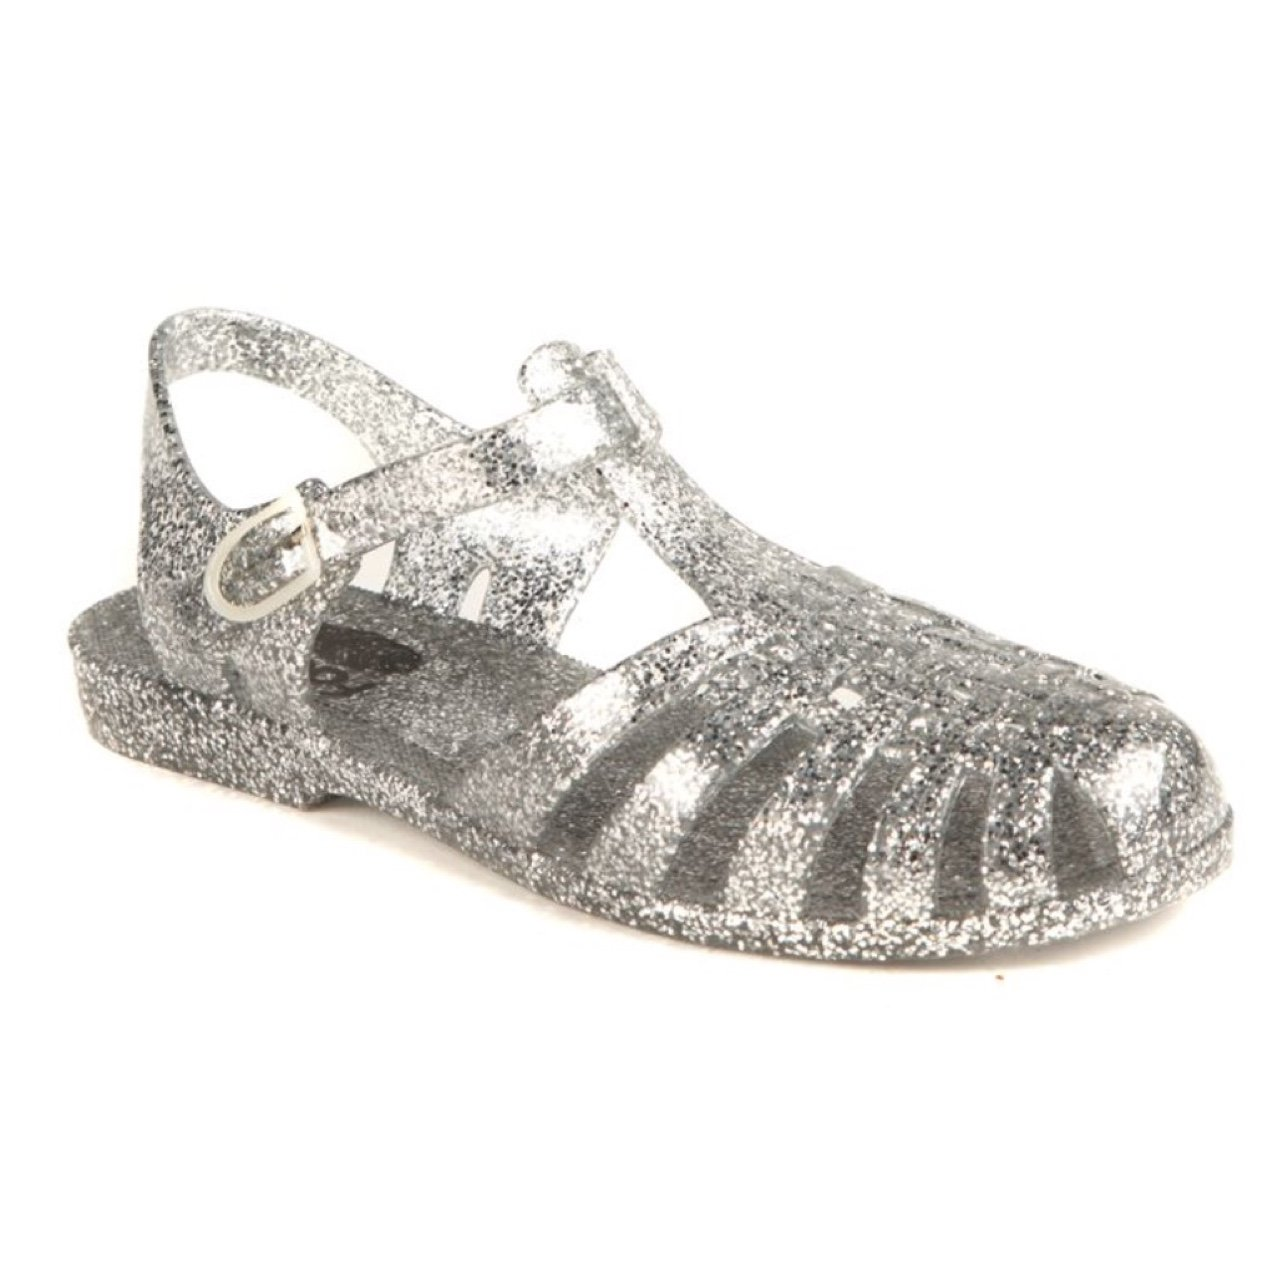 b38e653a6c54 💿 Factorie Silver Sparkly Glitter Jelly Sandals✨ Size UK 5 - Depop